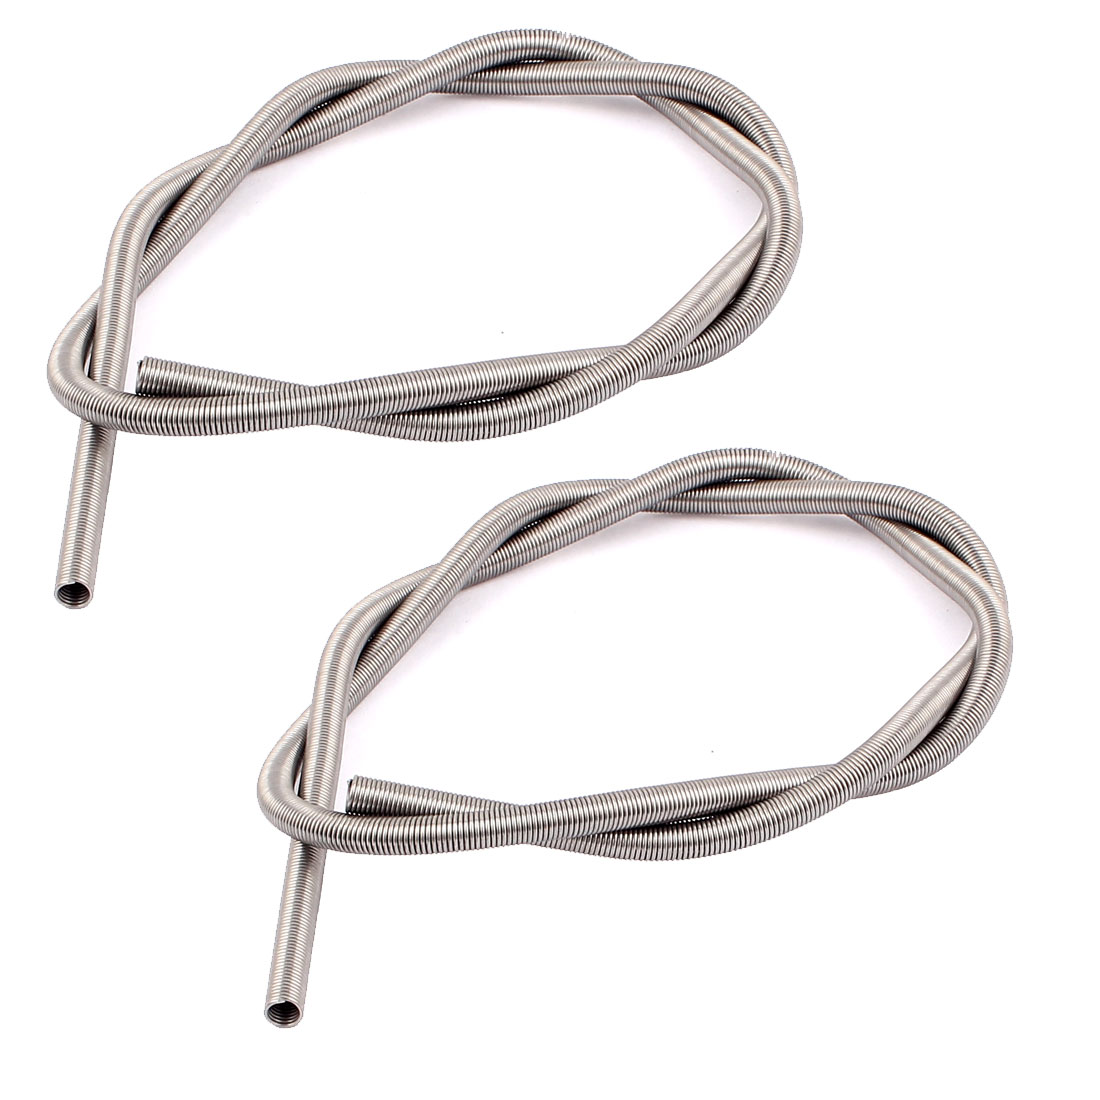 2 Pcs 220V 1500W High Temperature 5mm Diameter Heat Element Wire 59cm Long